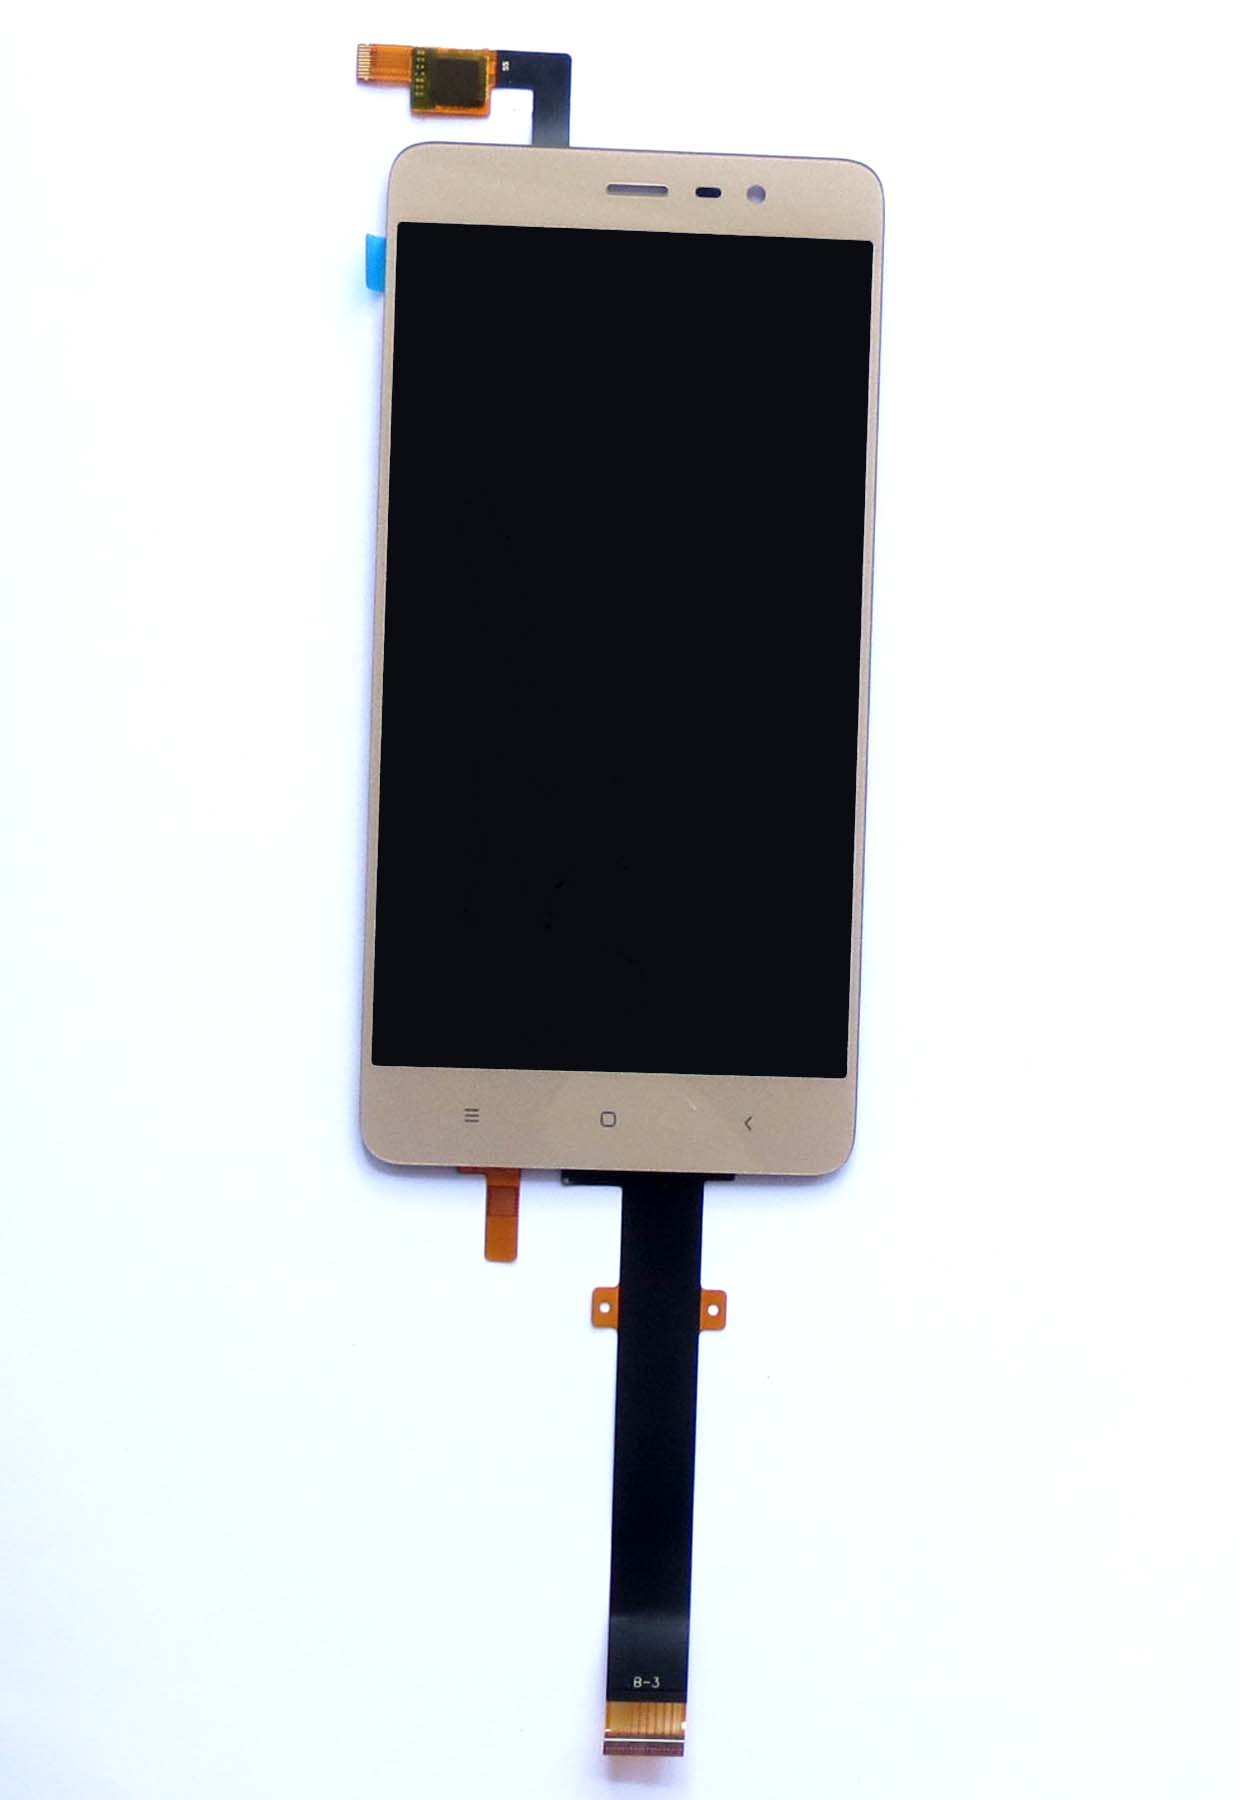 Original LCD Assembly with OEM Touch Screen for Redmi Note 3 pro special edition–Gold